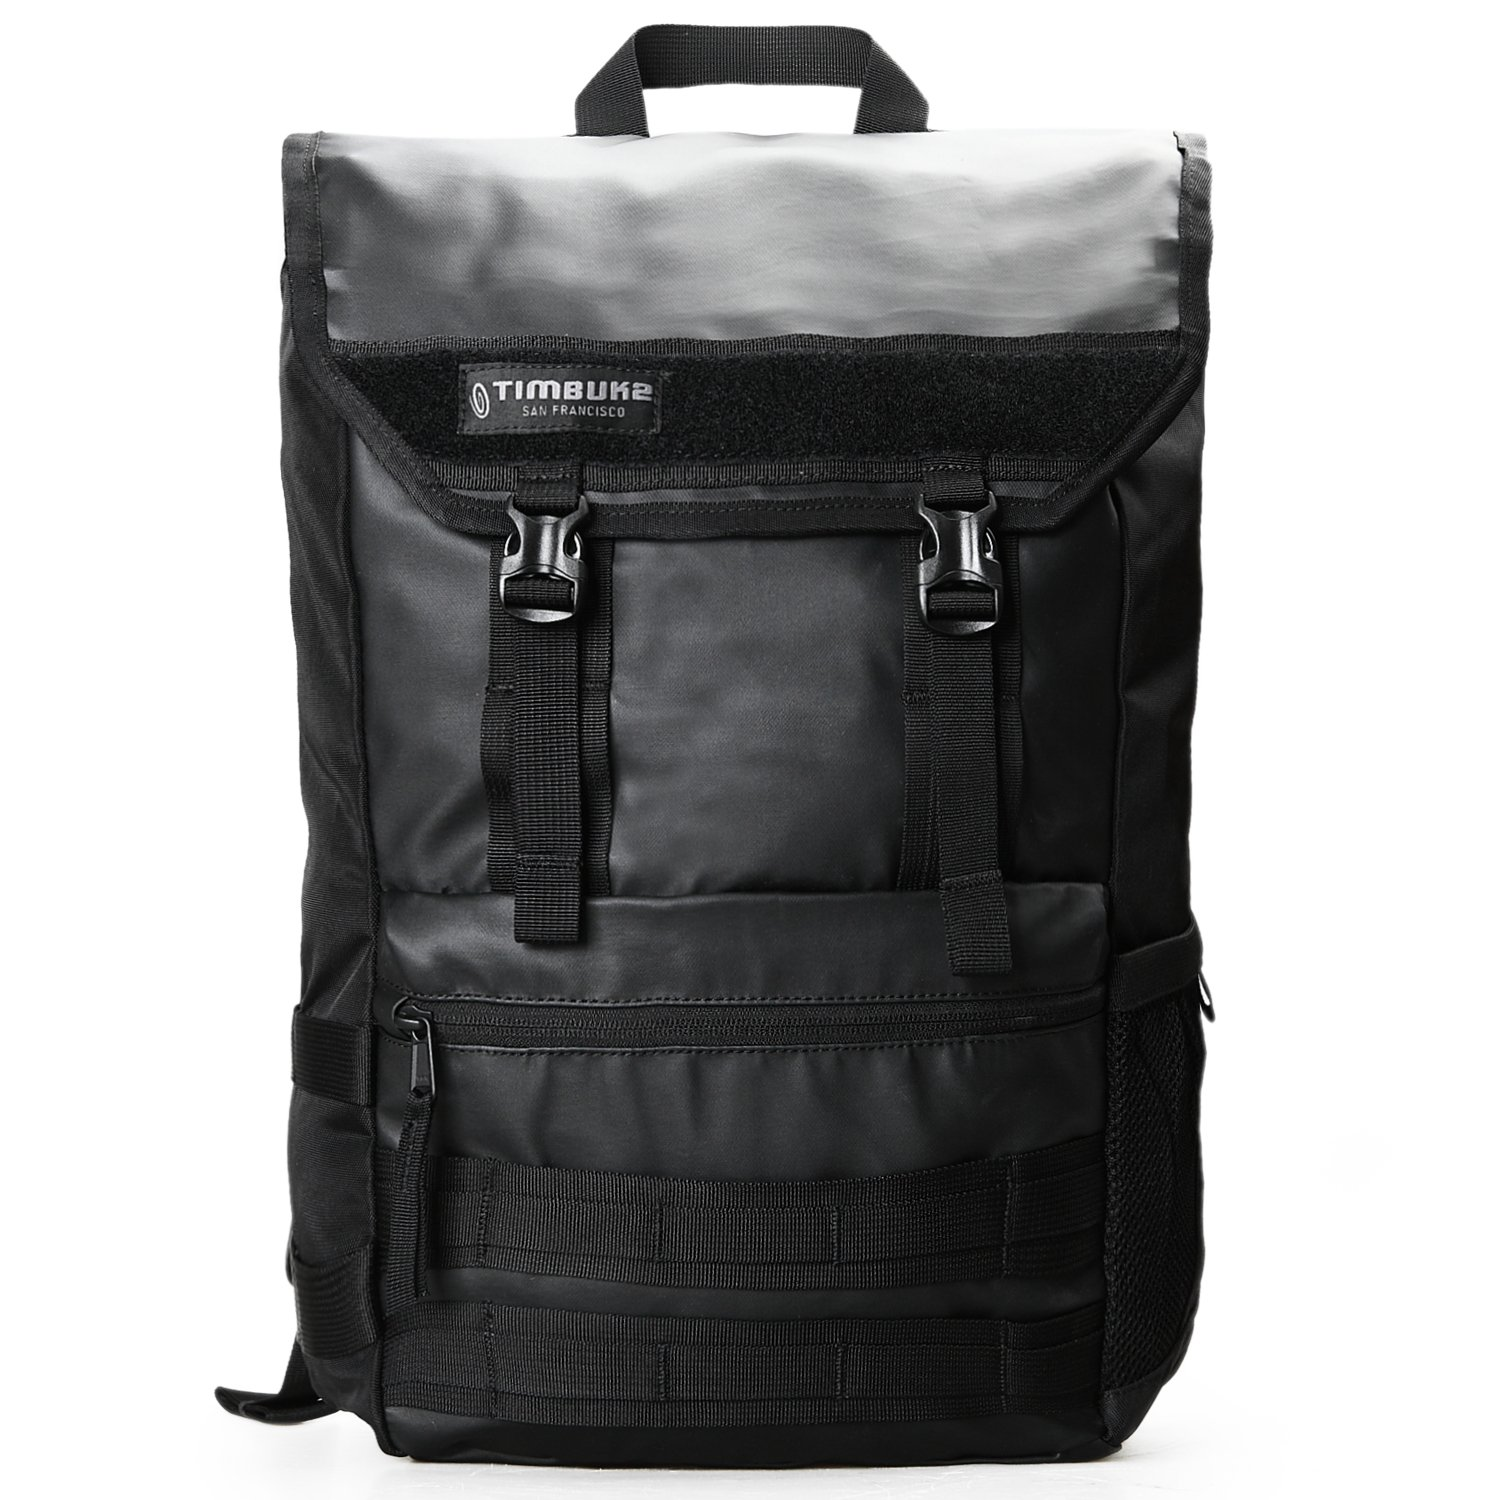 Timbuk2 Waterproof Laptop Backpack